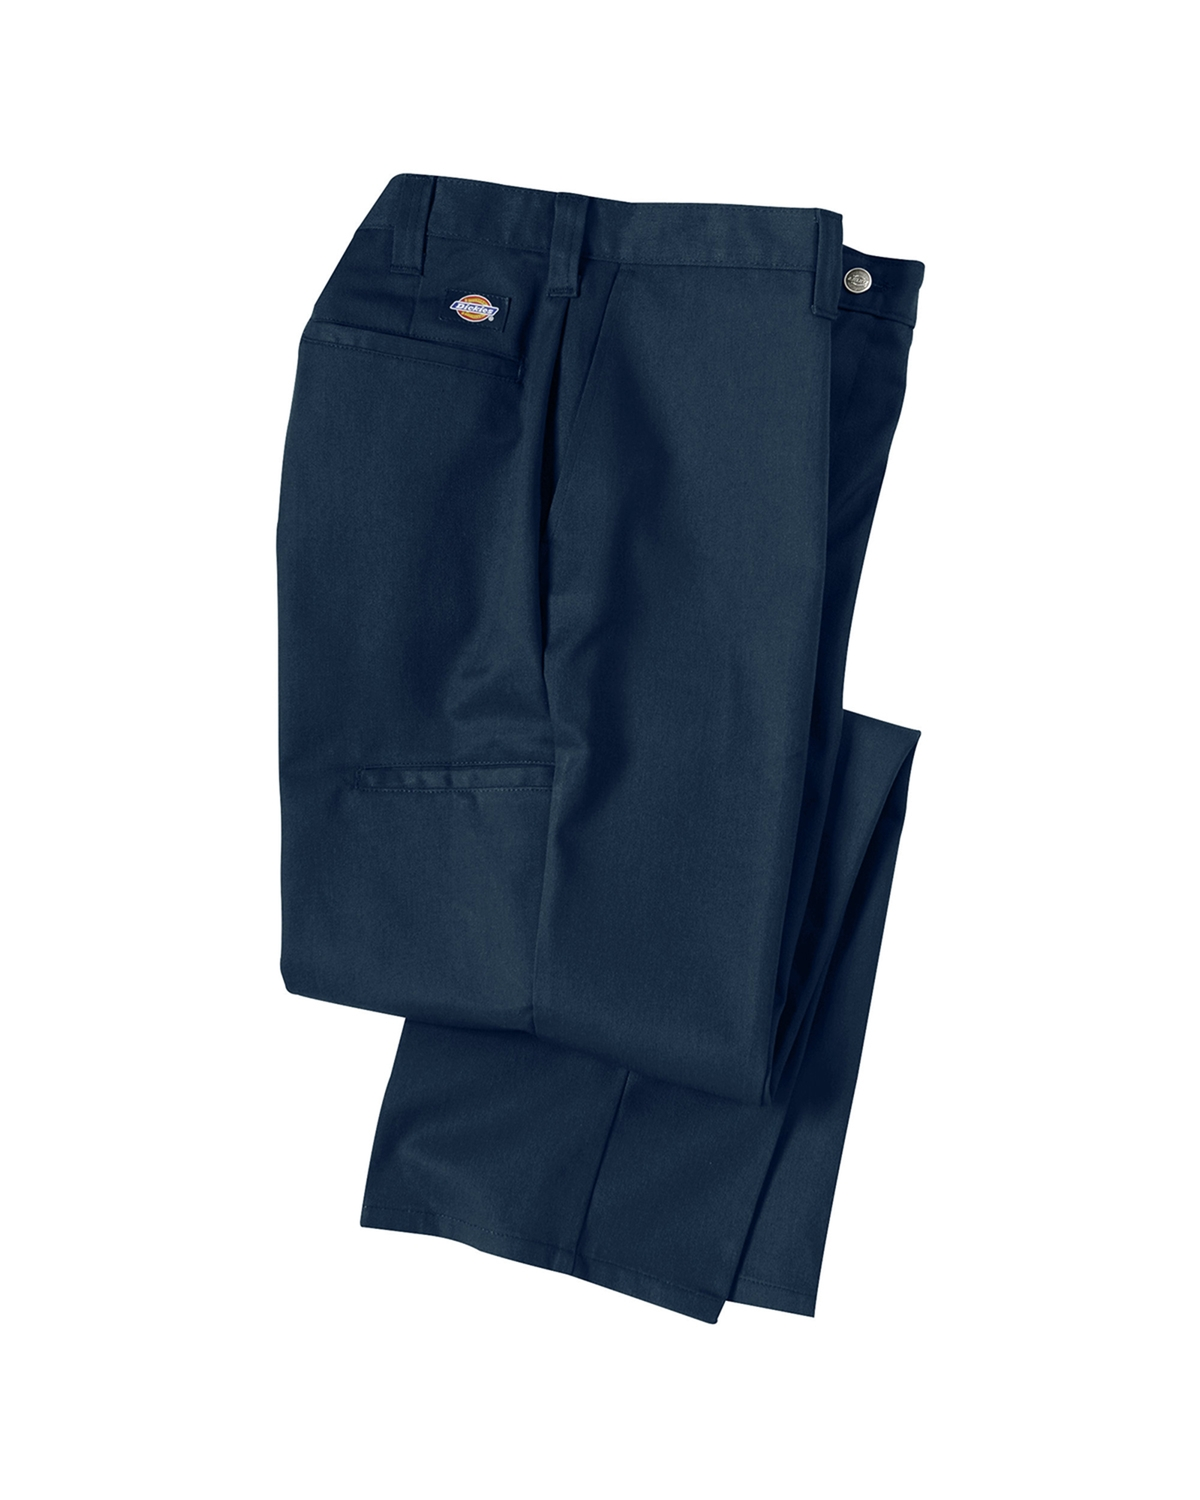 Dickies Drop Ship - 2112272 7.75 oz. Premium Industrial Multi-Use Pant With Pockets